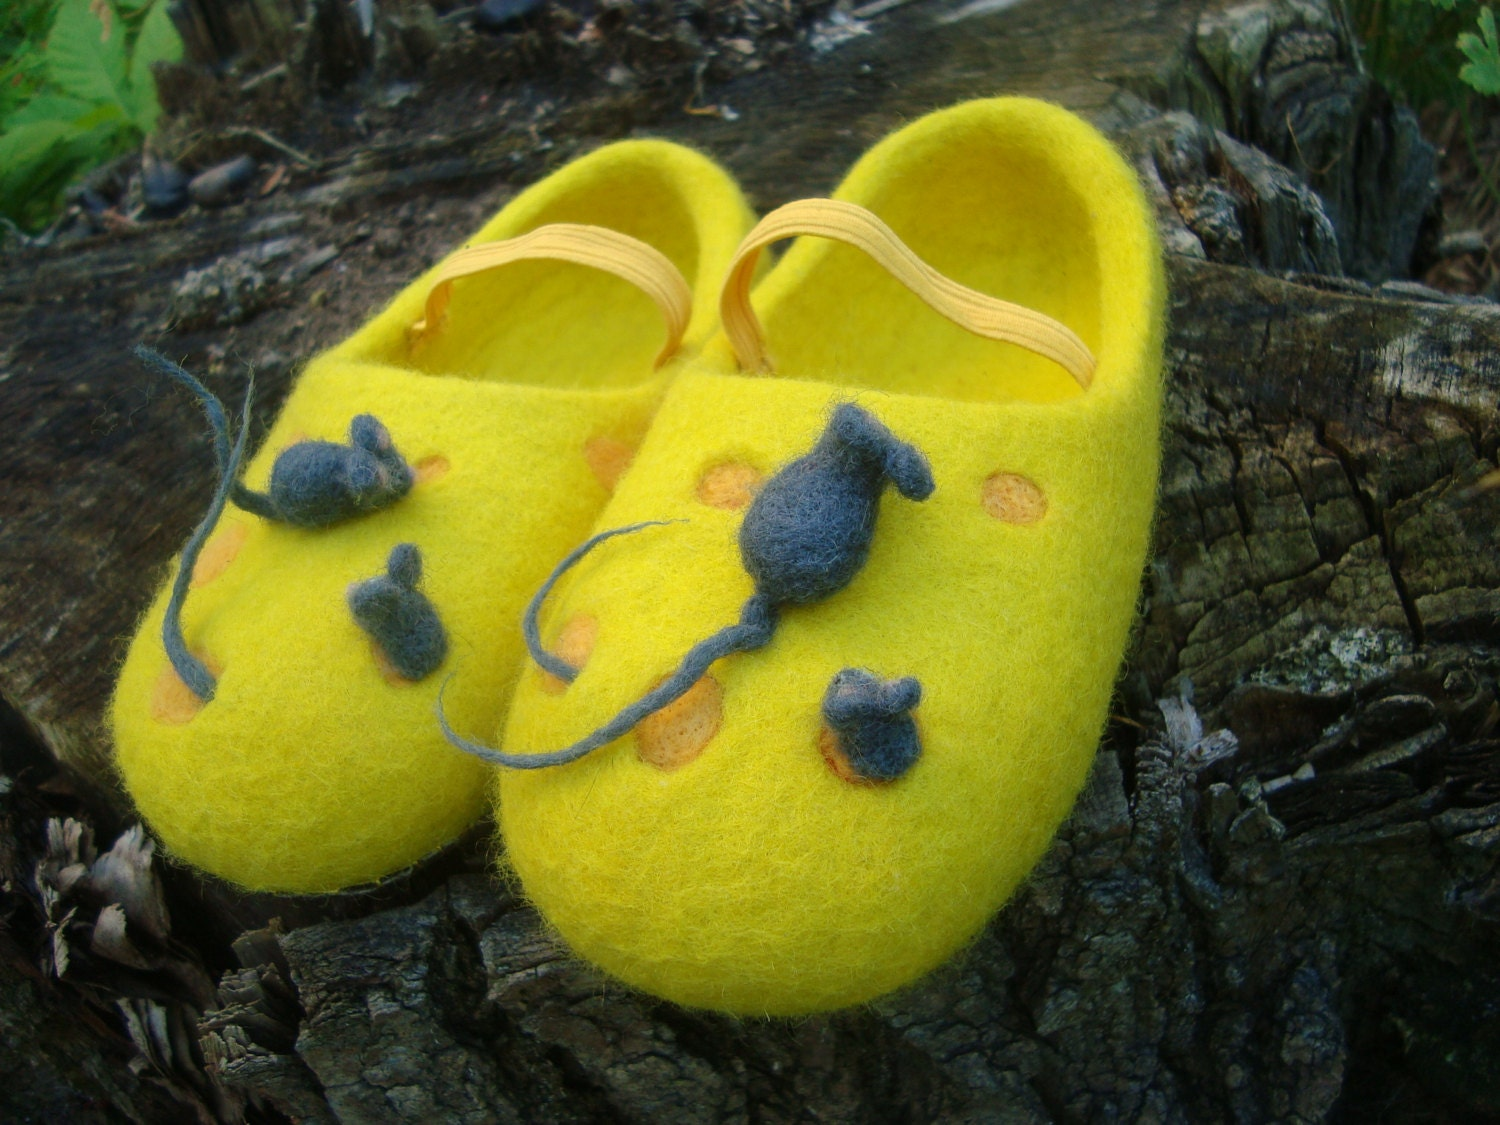 Felt yellow house slippers Felted wool clogs Personalized Cheese Mouse lover gift Personalized clogs shoes Comfortable footwear Custom order Funny flats 613958